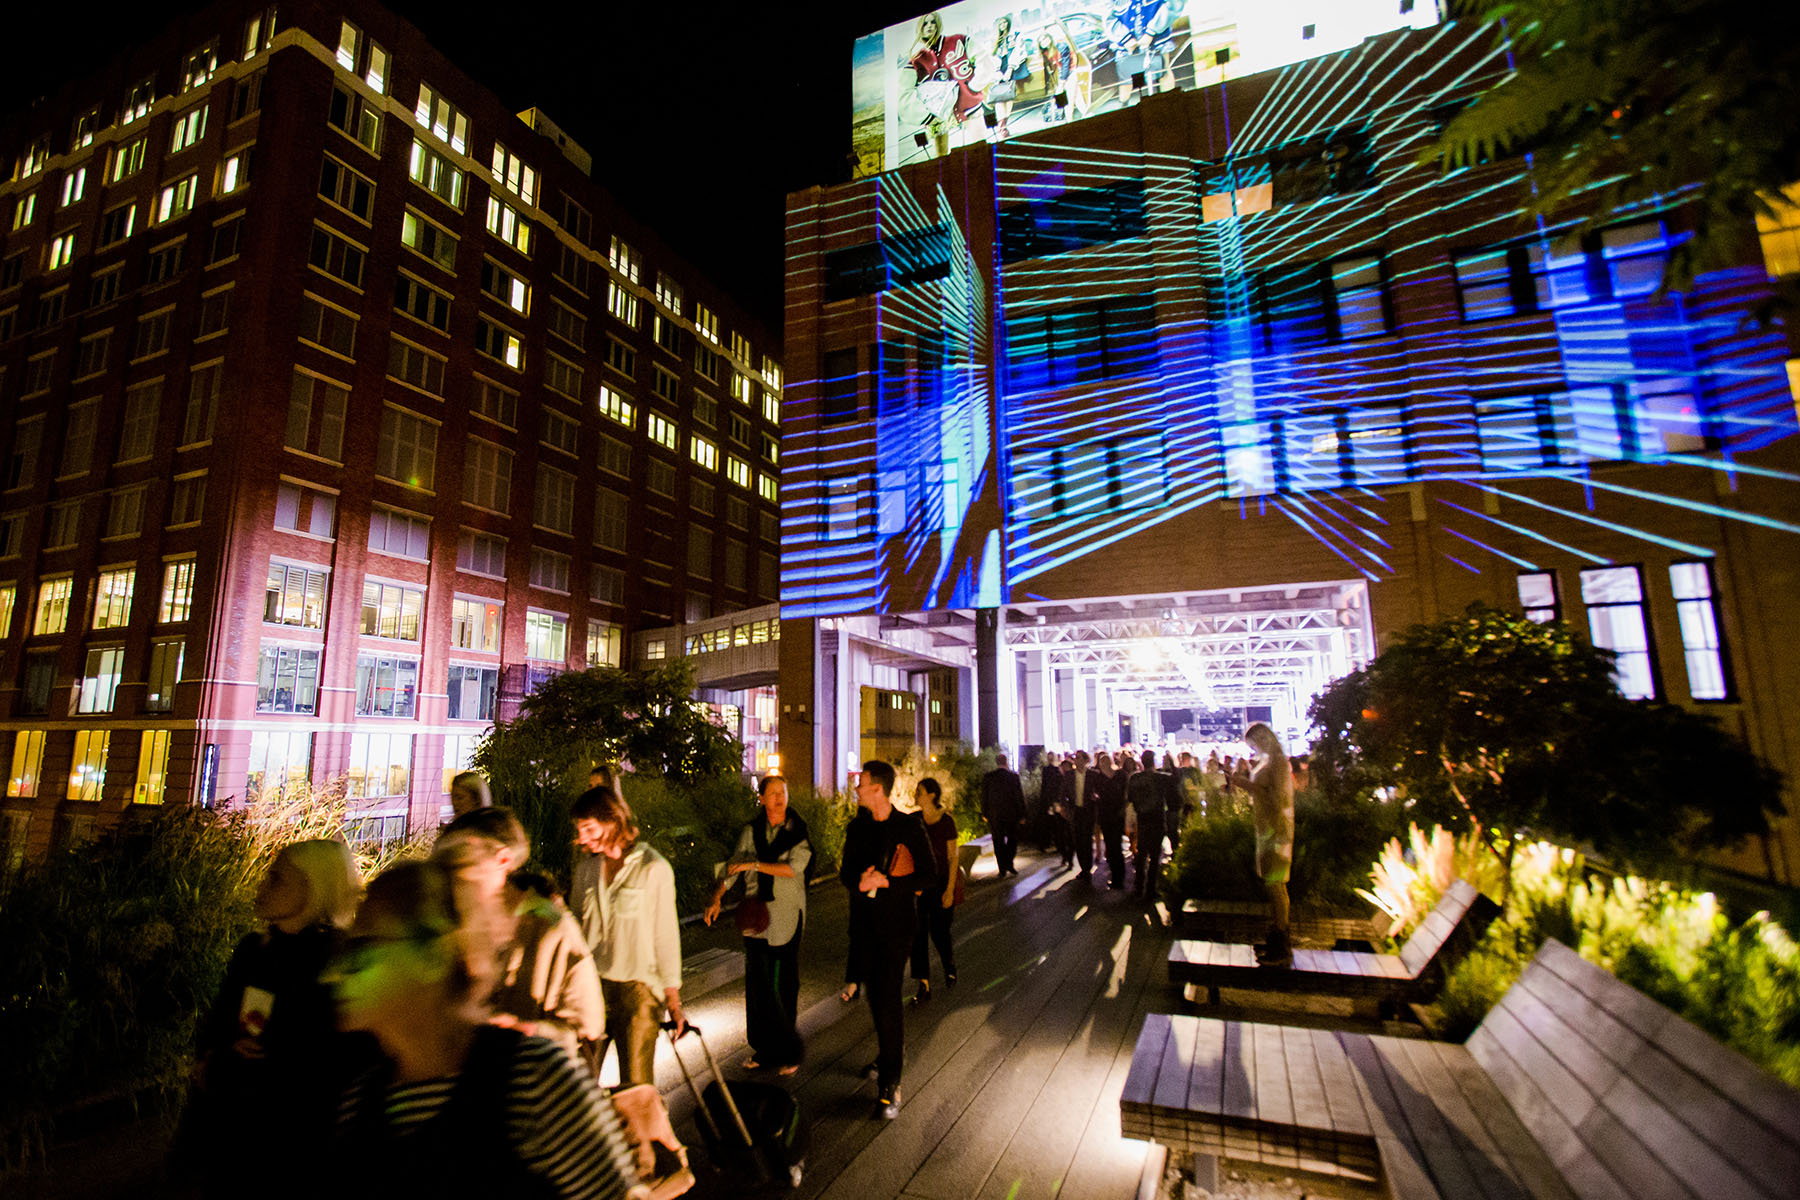 Photo #8 Diller - von Furstenberg Sundeck  at High Line - Chelsea Market Passage